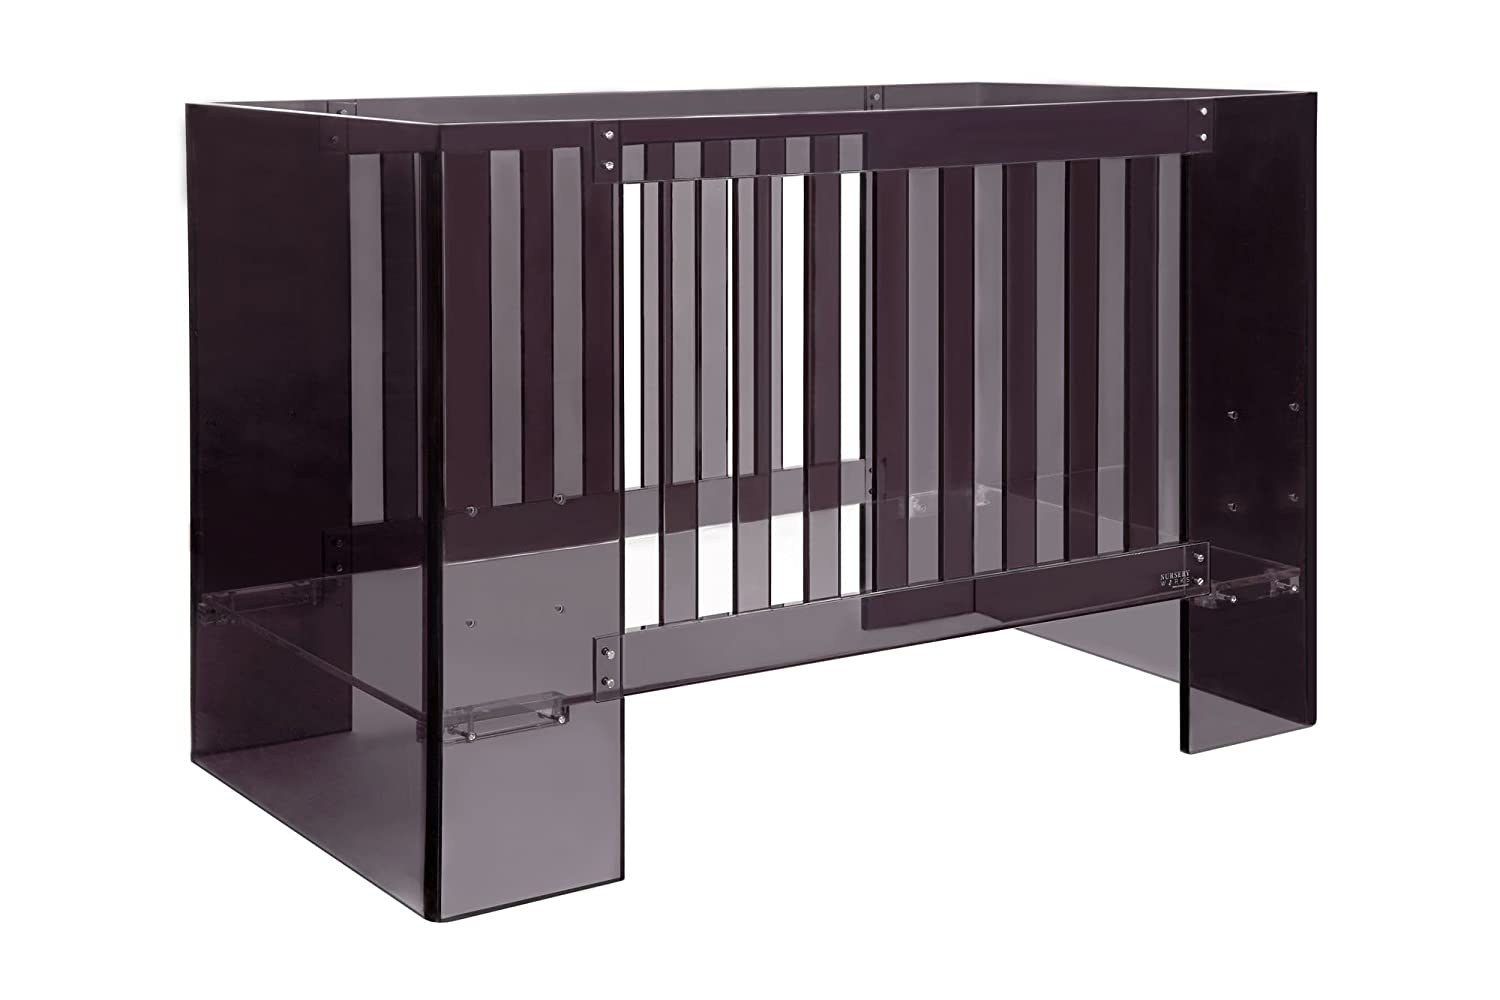 amazoncom  nursery works vetro crib shadow acrylic  baby -